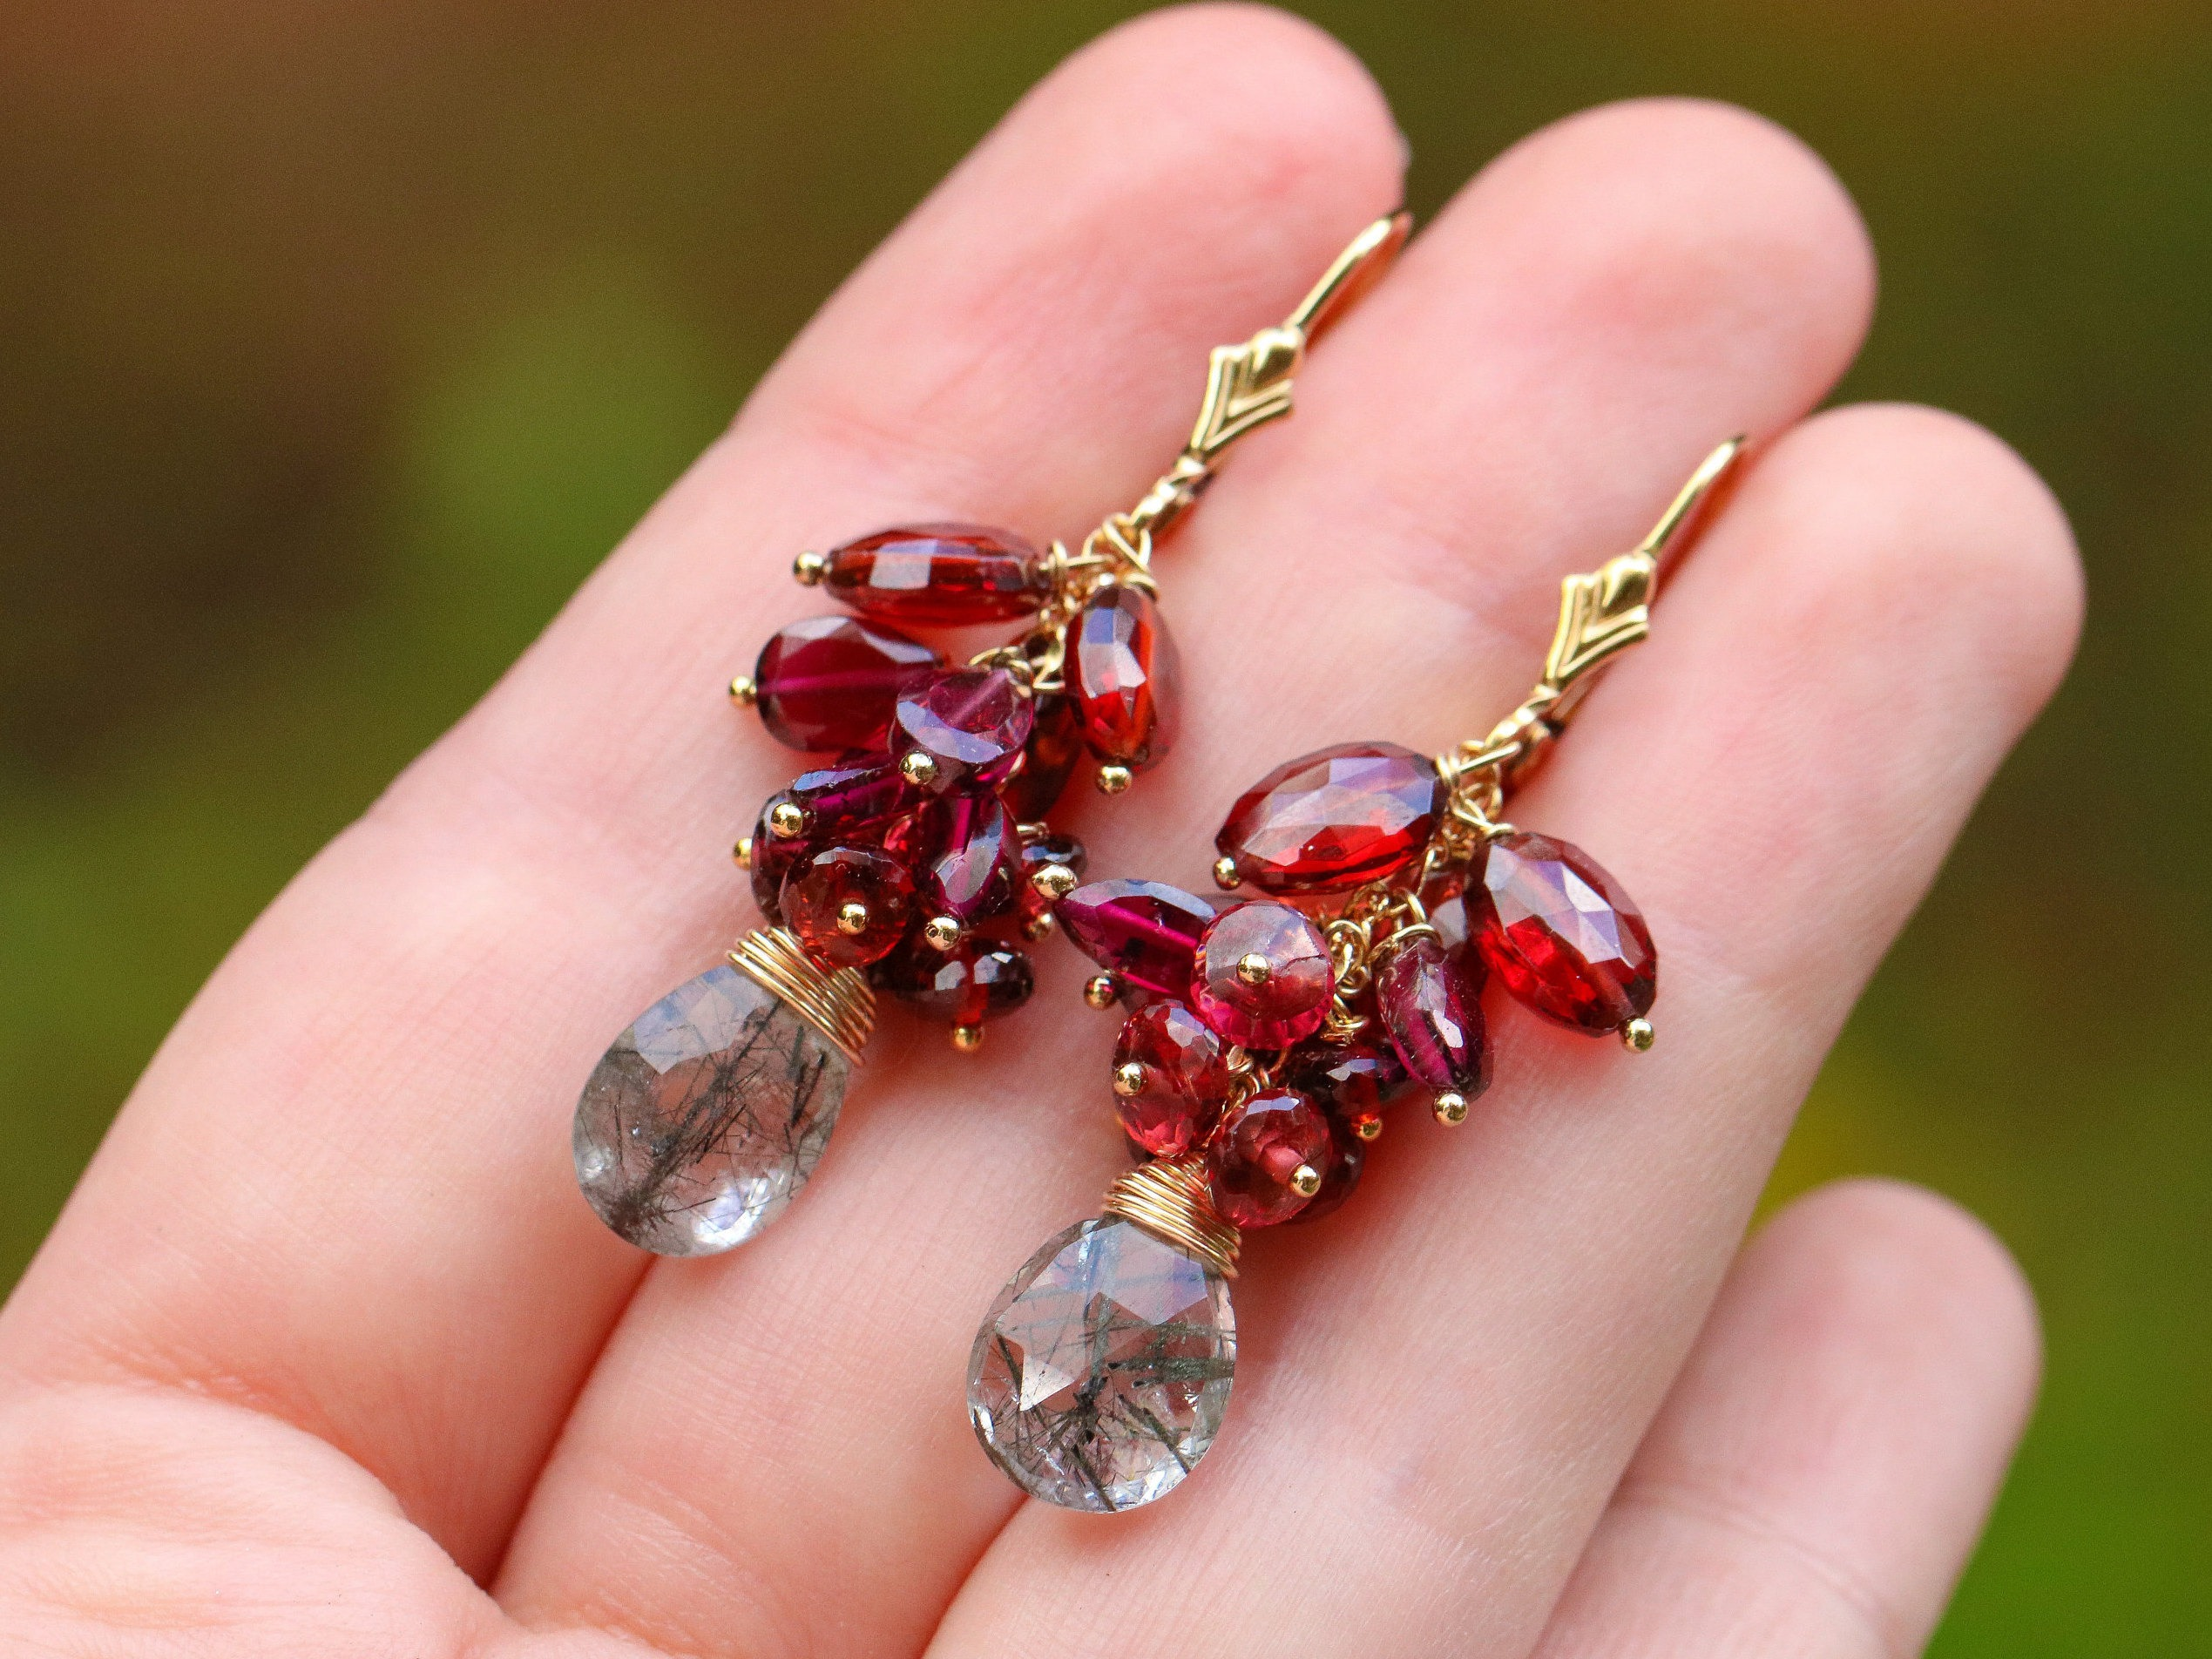 mcclelland column rhodolite mcteigue earrings item garnet link